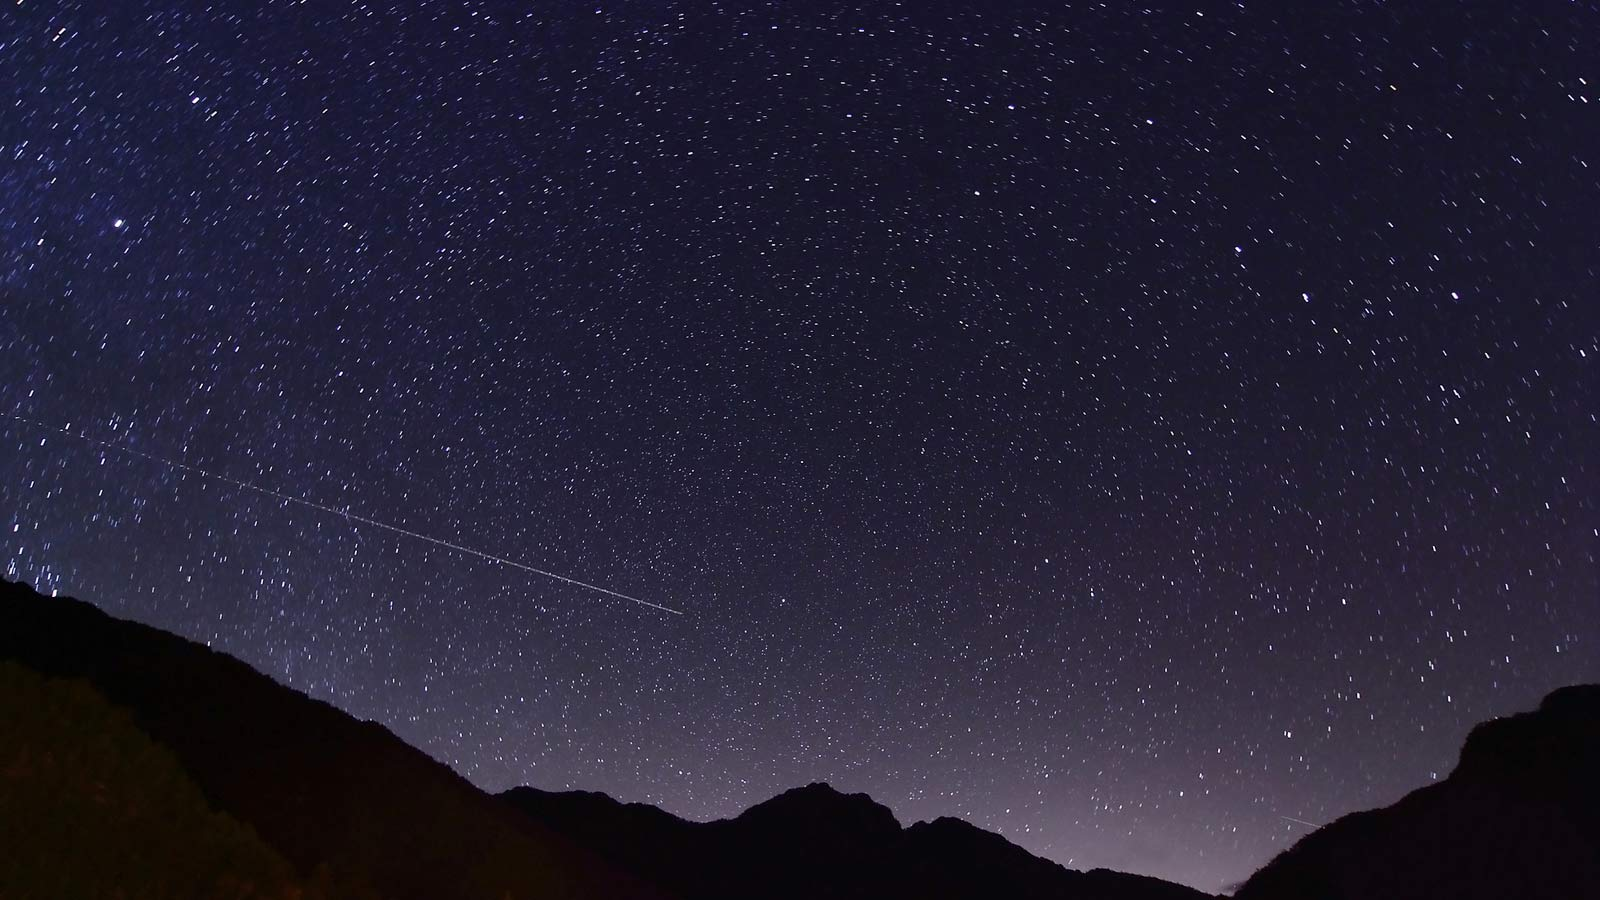 See the Perseid Meteor Shower! A collection of Japanese lodgings that put you close to the starry sky